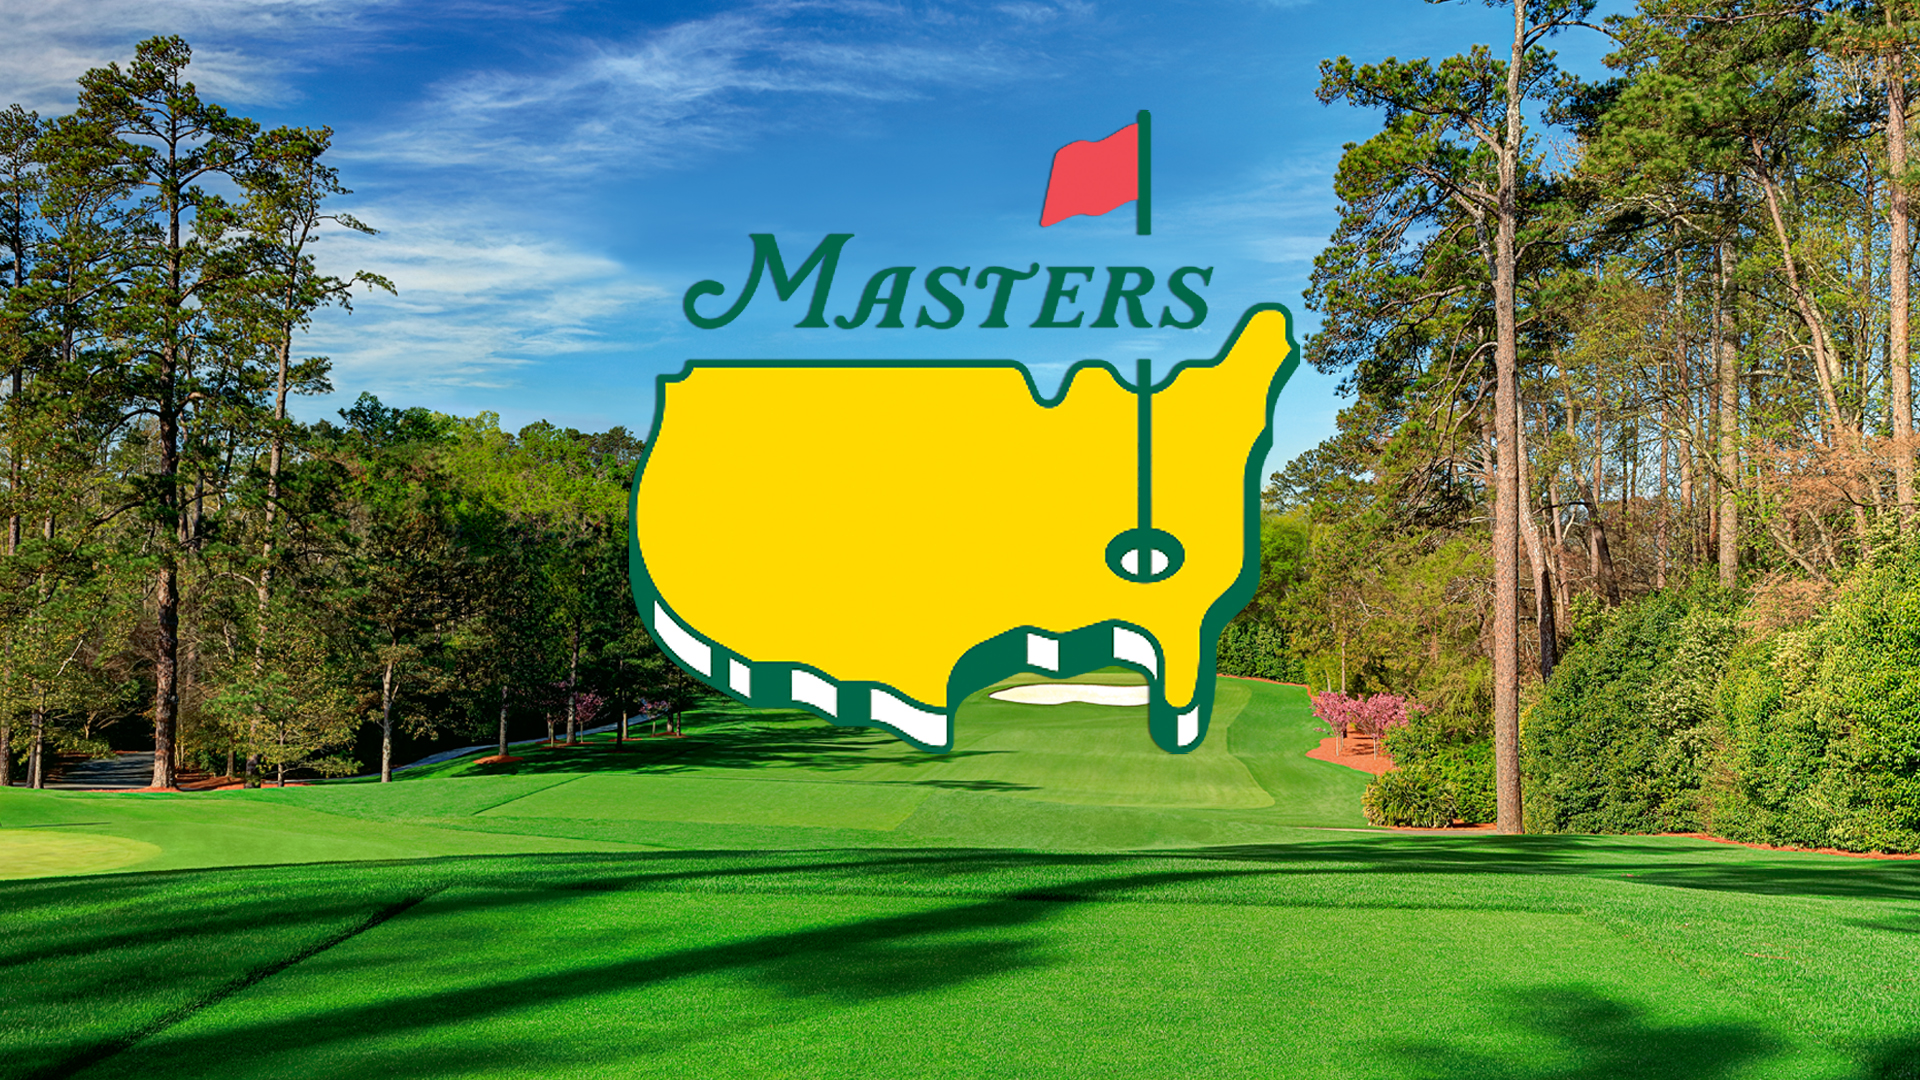 Limited attendance announced for 2021 Masters Golf Tournament